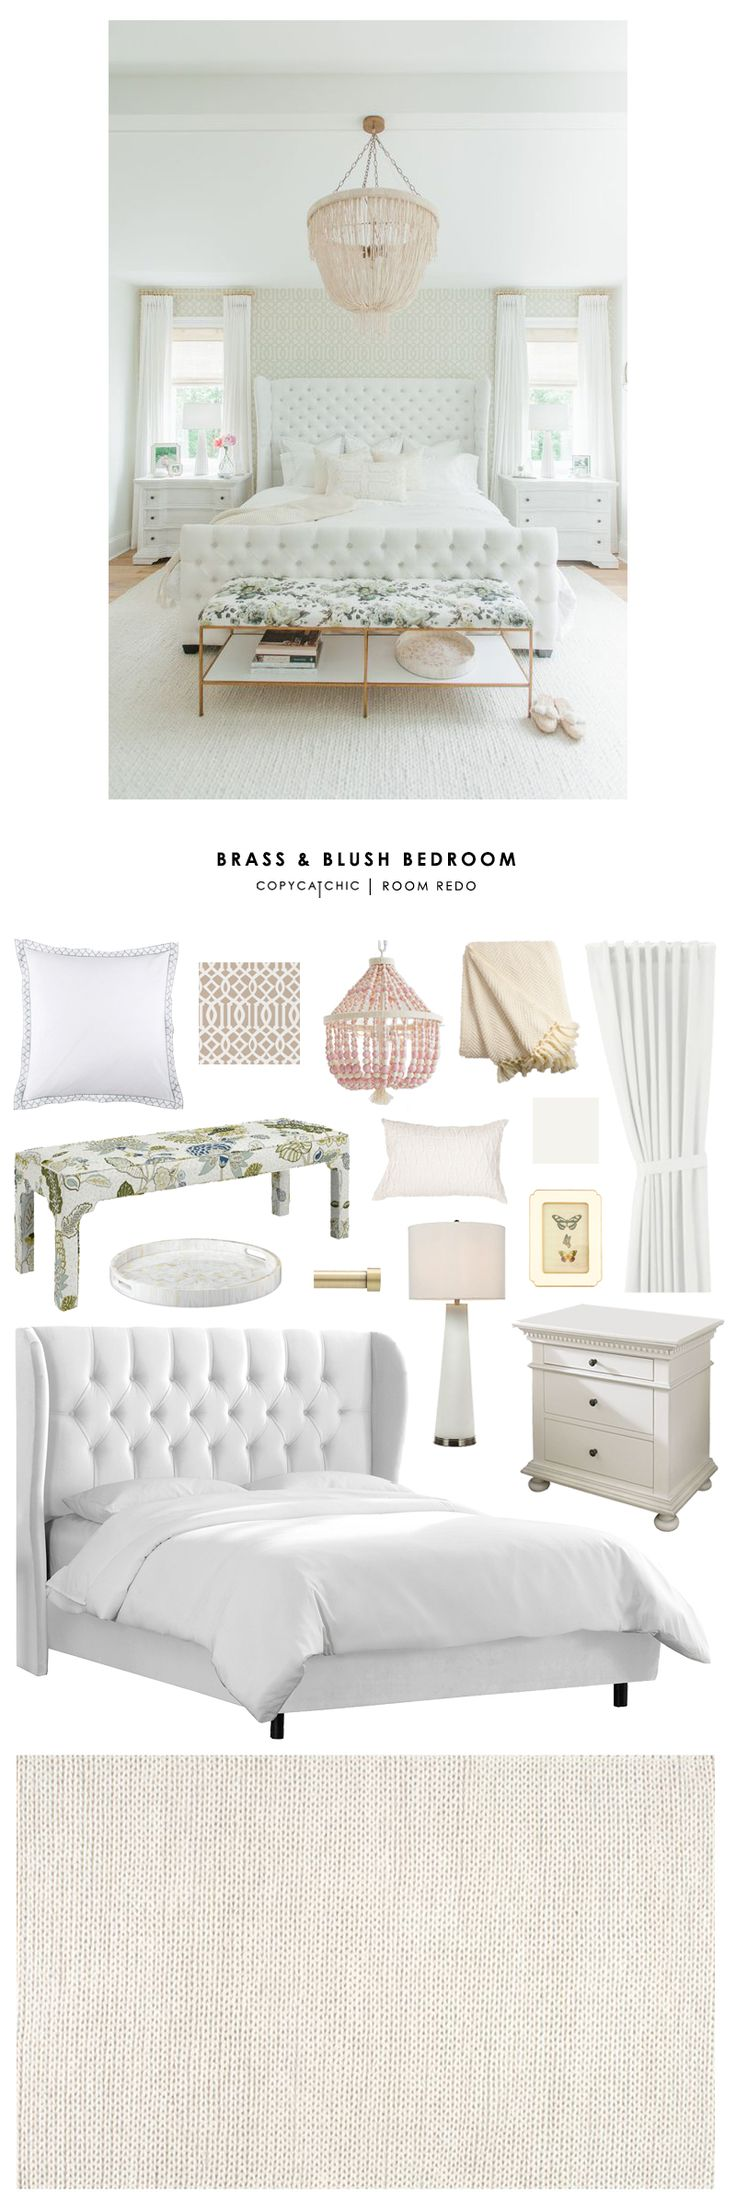 Copy Cat Chic Room Redo | Brass and Blush Bedroom | Copy Cat Chic | Bloglovin' More